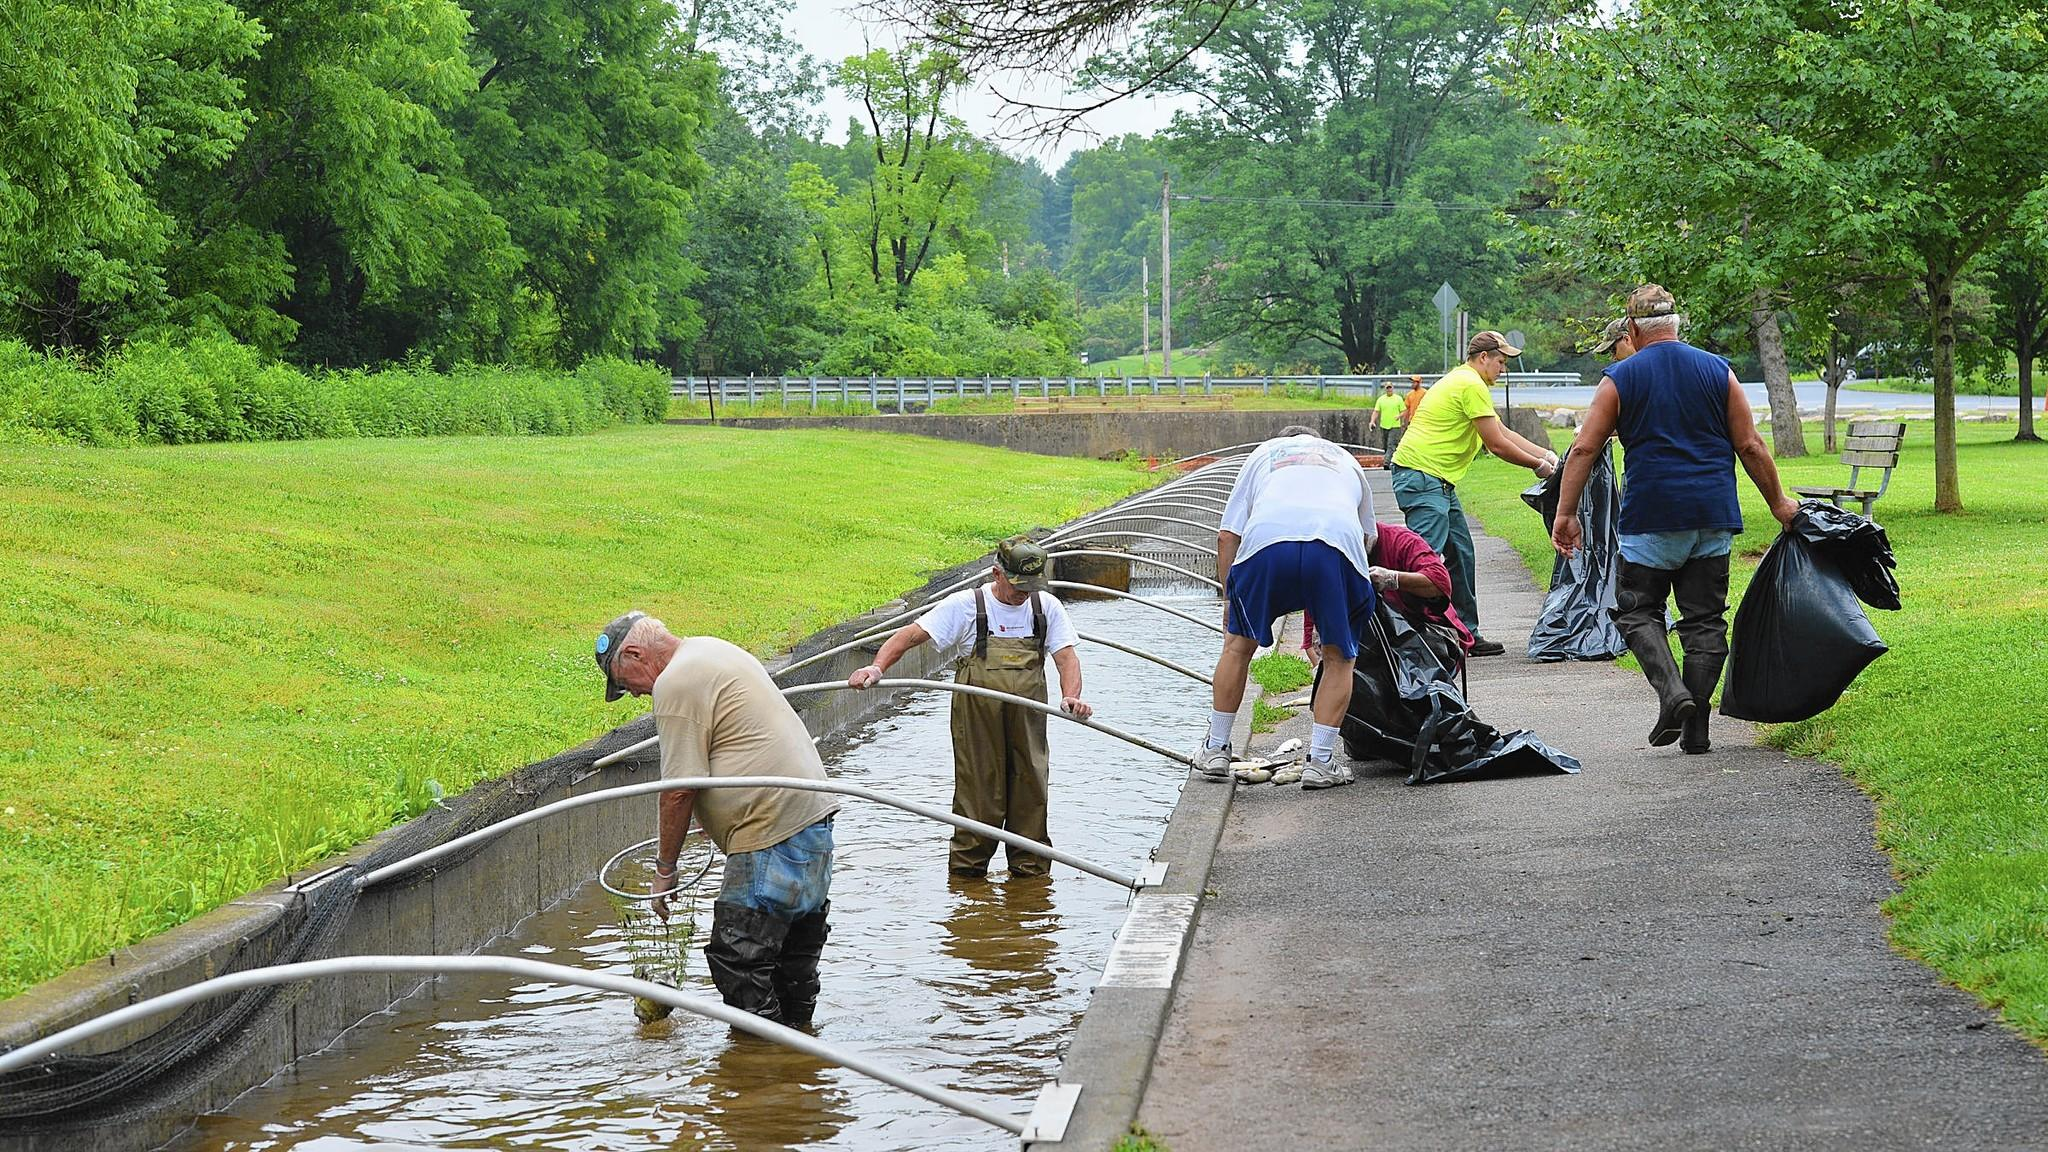 City workers and volunteers work together to help remove dead trout out of runways at the Lil-Le-Hi Fish Hatchery.